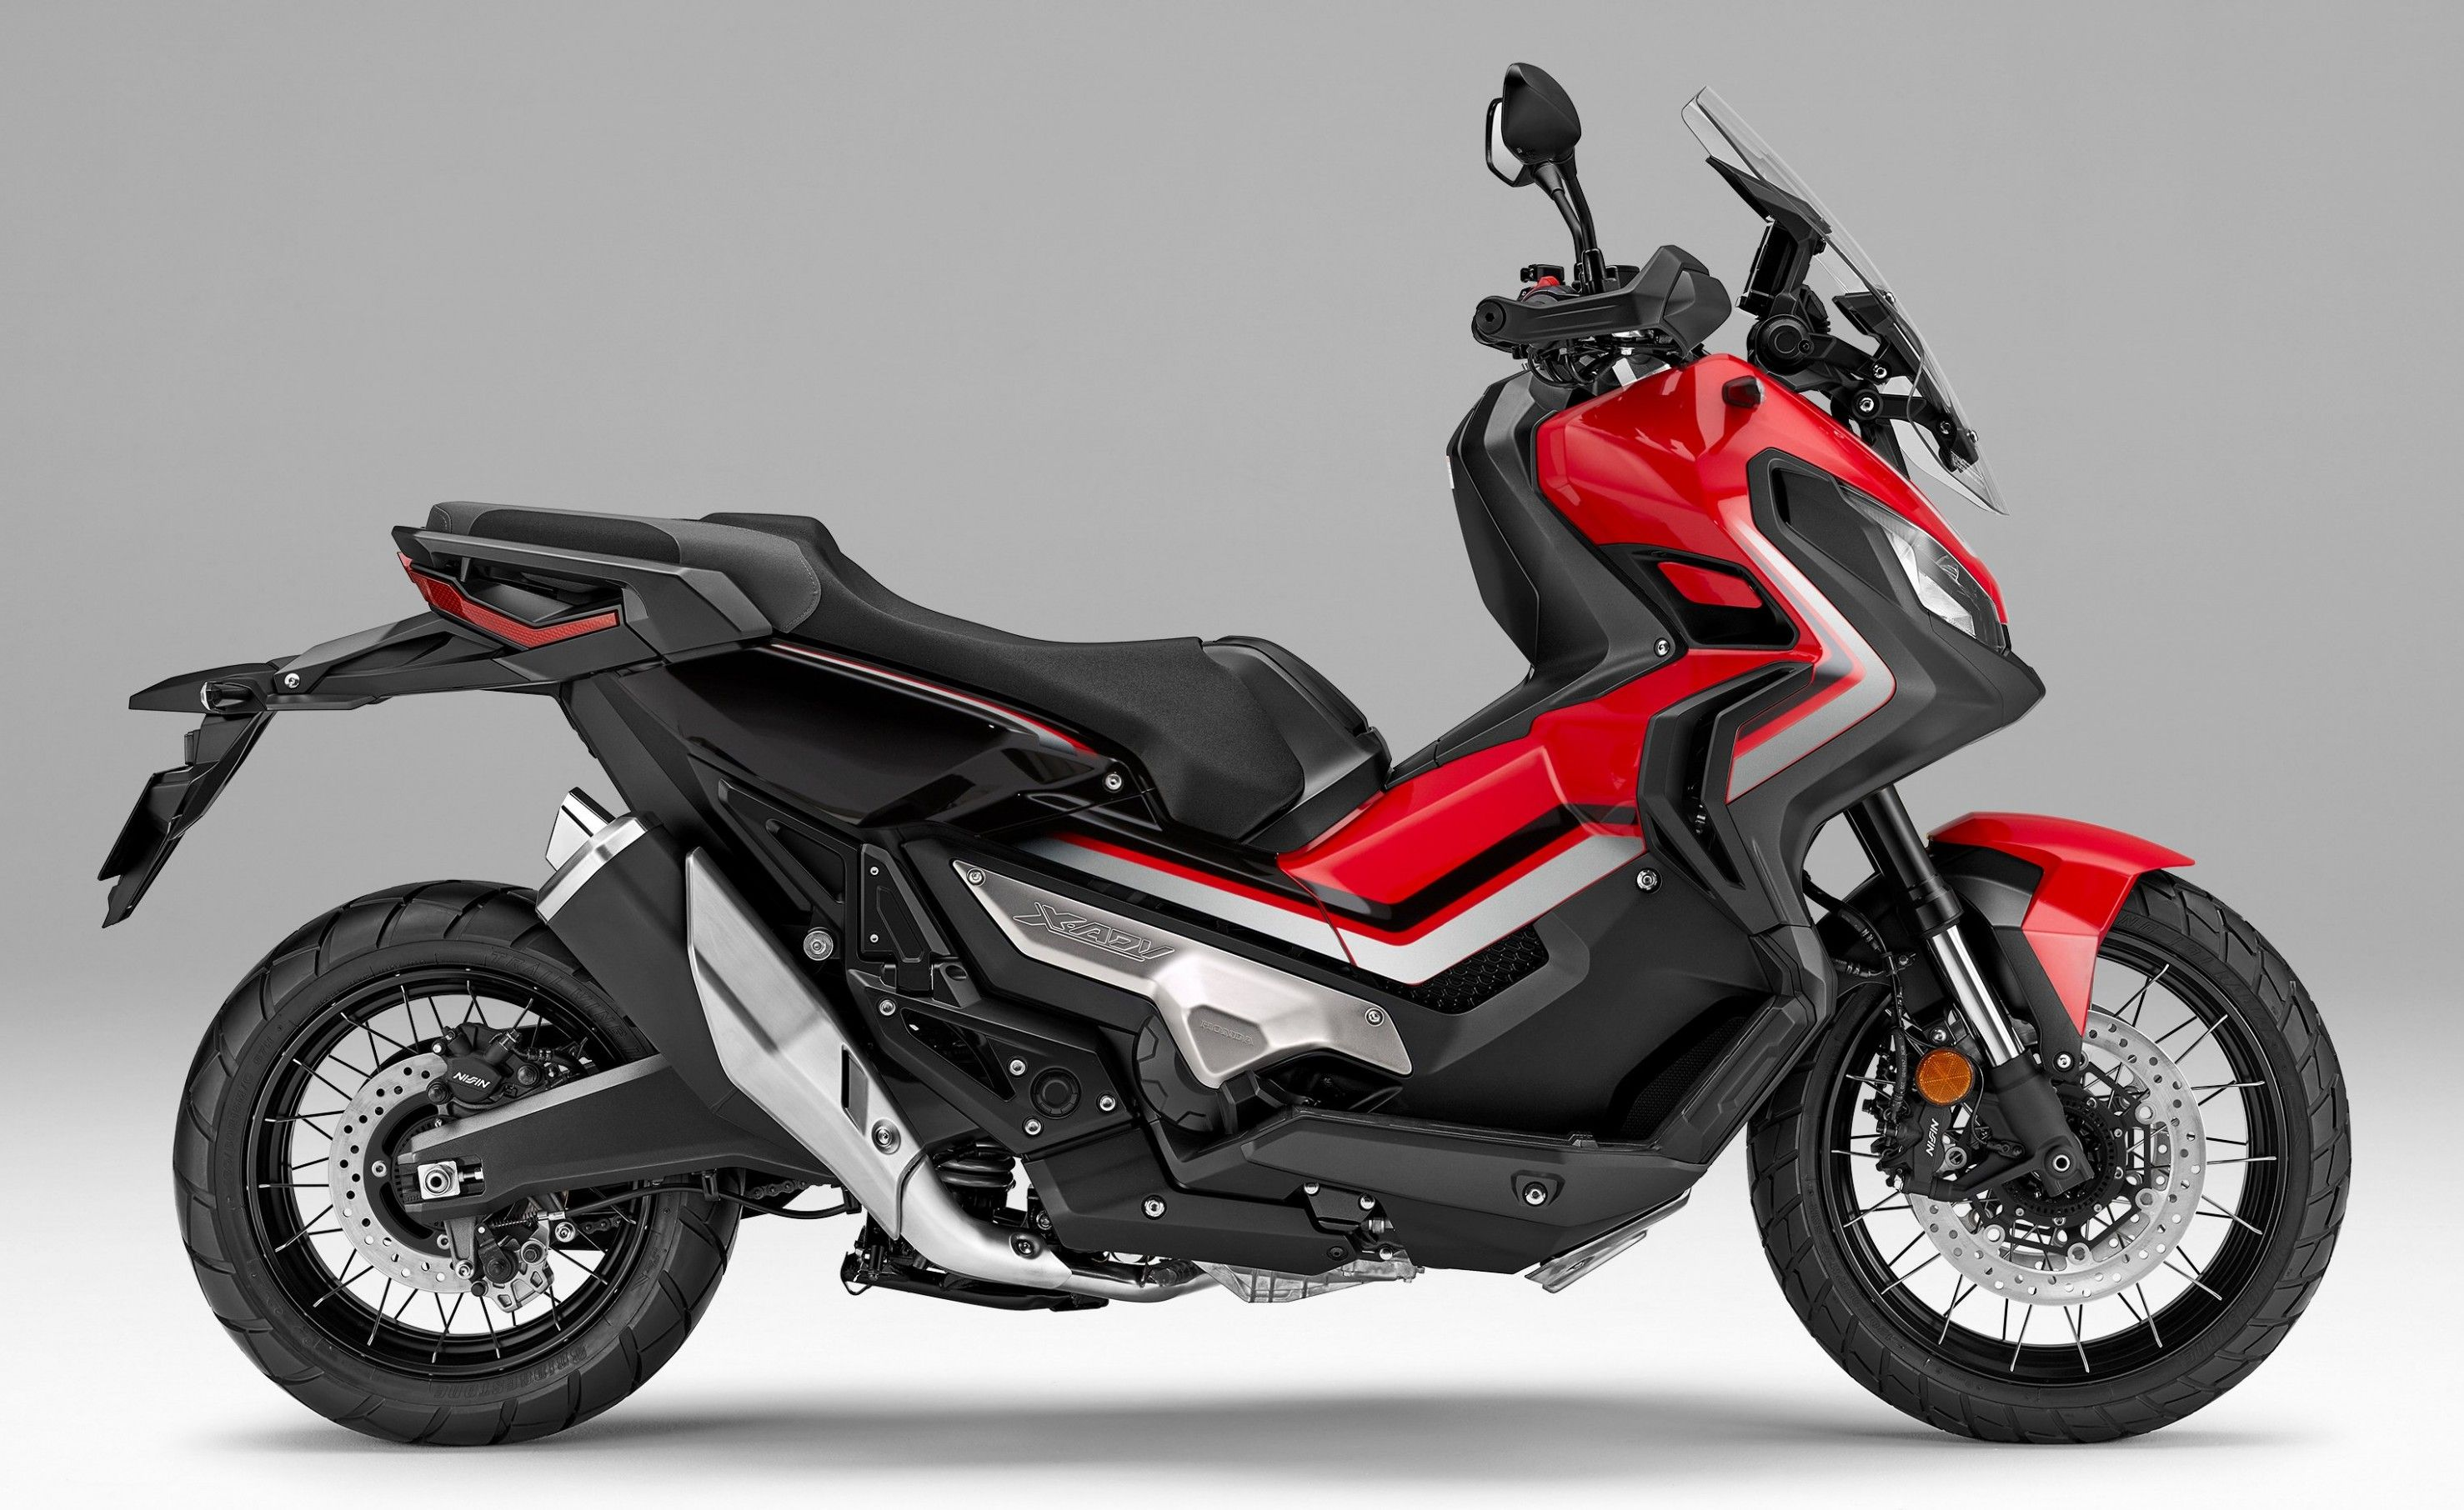 Honda Motorcycle Philippines Price List 2020 Motorcycle